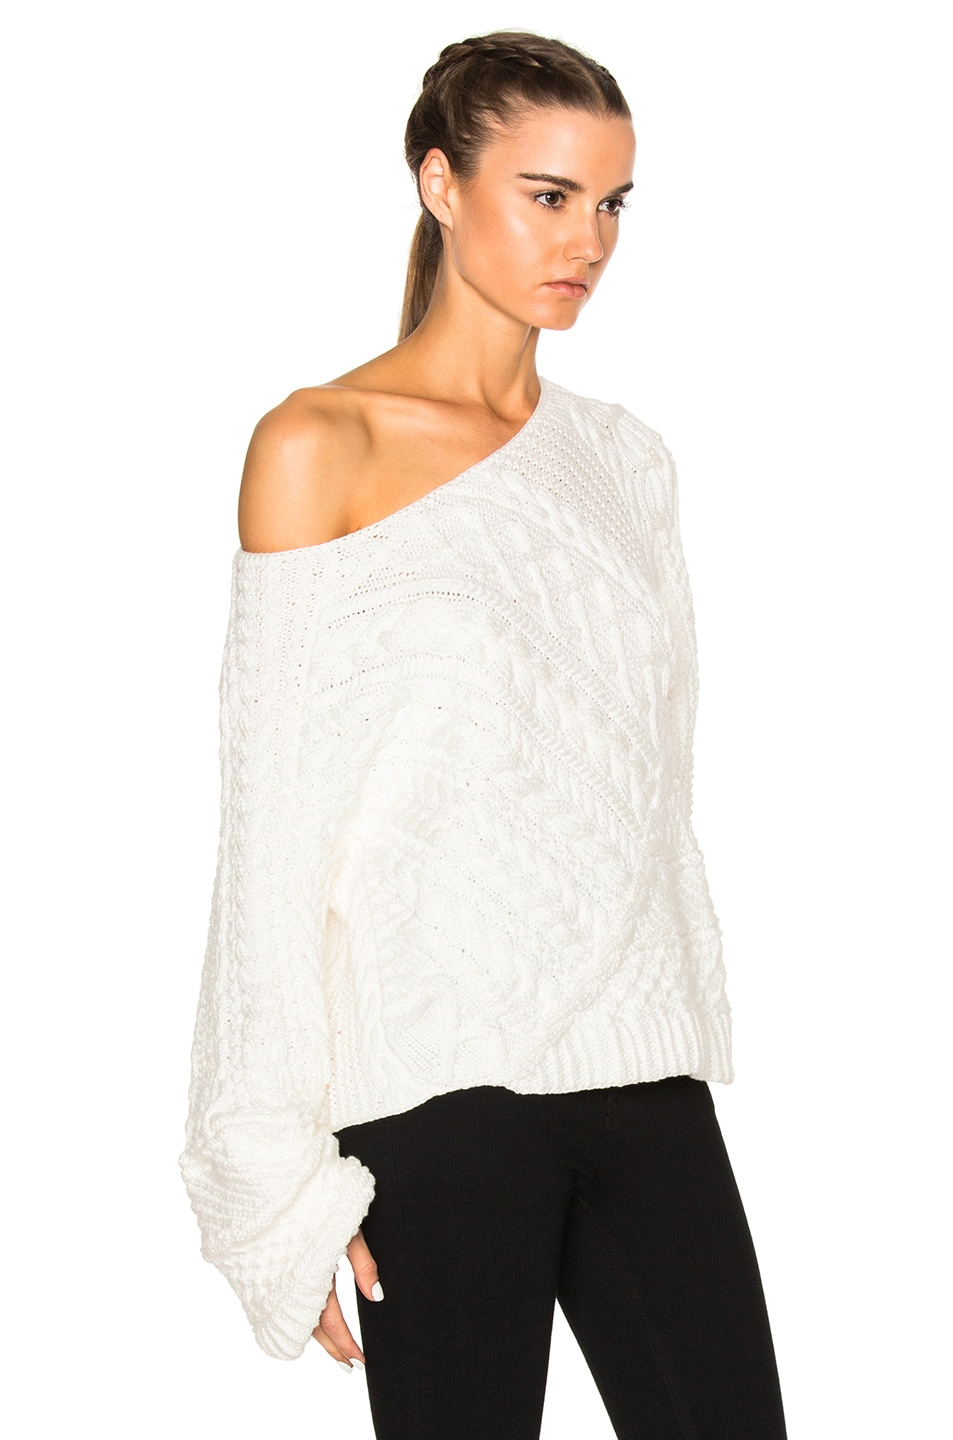 White Cable Knit Sweater Women